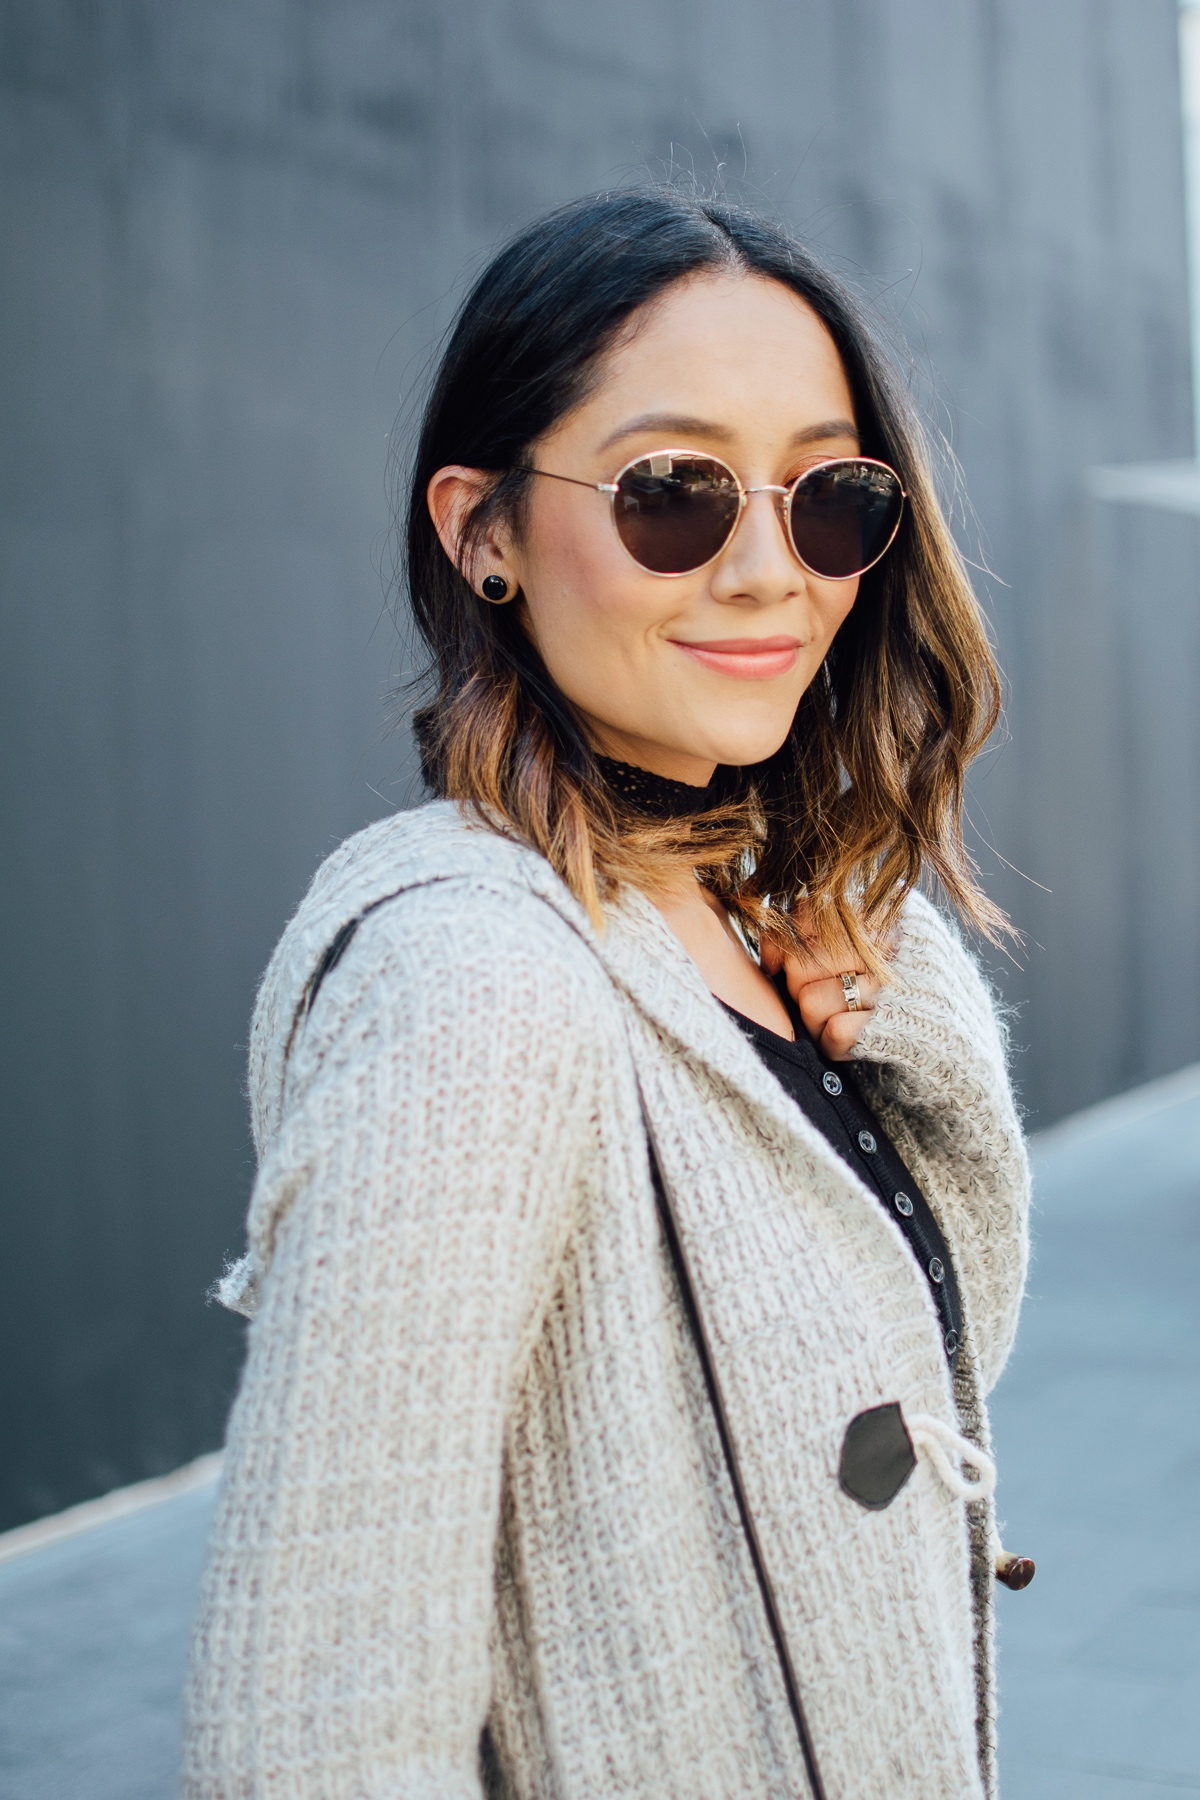 Style blogger Lilly Beltran of Daily Craving in a hooded cardi and round lens sunglasses